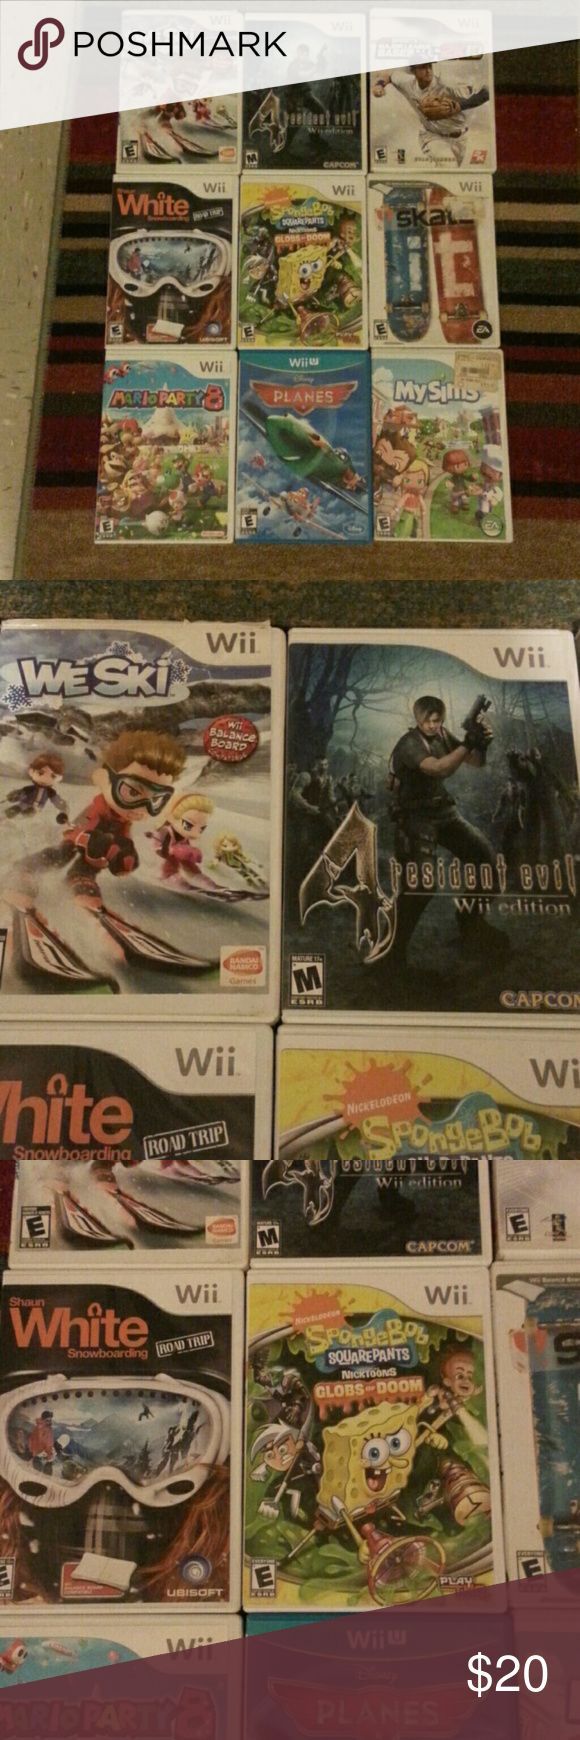 Wii games and 1 wii u WII U GAMES!!!  9 GAMES IN ALL IN GREAT CONDITION!! ONLY PLAYED WITH A FEW TIMES. NO SCRATCHES OR SCUFFS! GAMES INCLUDE WE SKI, RESIDENT EVIL 4, 2K10 BASEBALL, SHAUN WHITE SNOW BOARDING, SPONGEBOB, SKATE IT, MARIO PARTY 8, DISNEYS PLANES FOR THE WII U AND MY SIMS. AII GAMES CAN BE PLAYED ON THE WII U . THE ONLY THING IS THE WII U GAME CAN NOT BE PLAYED ON THE REGULAR WII. SELLING ALL TOGETHER. OR SEPERATE IF YOUR INTERESTED. wii u , wii Other